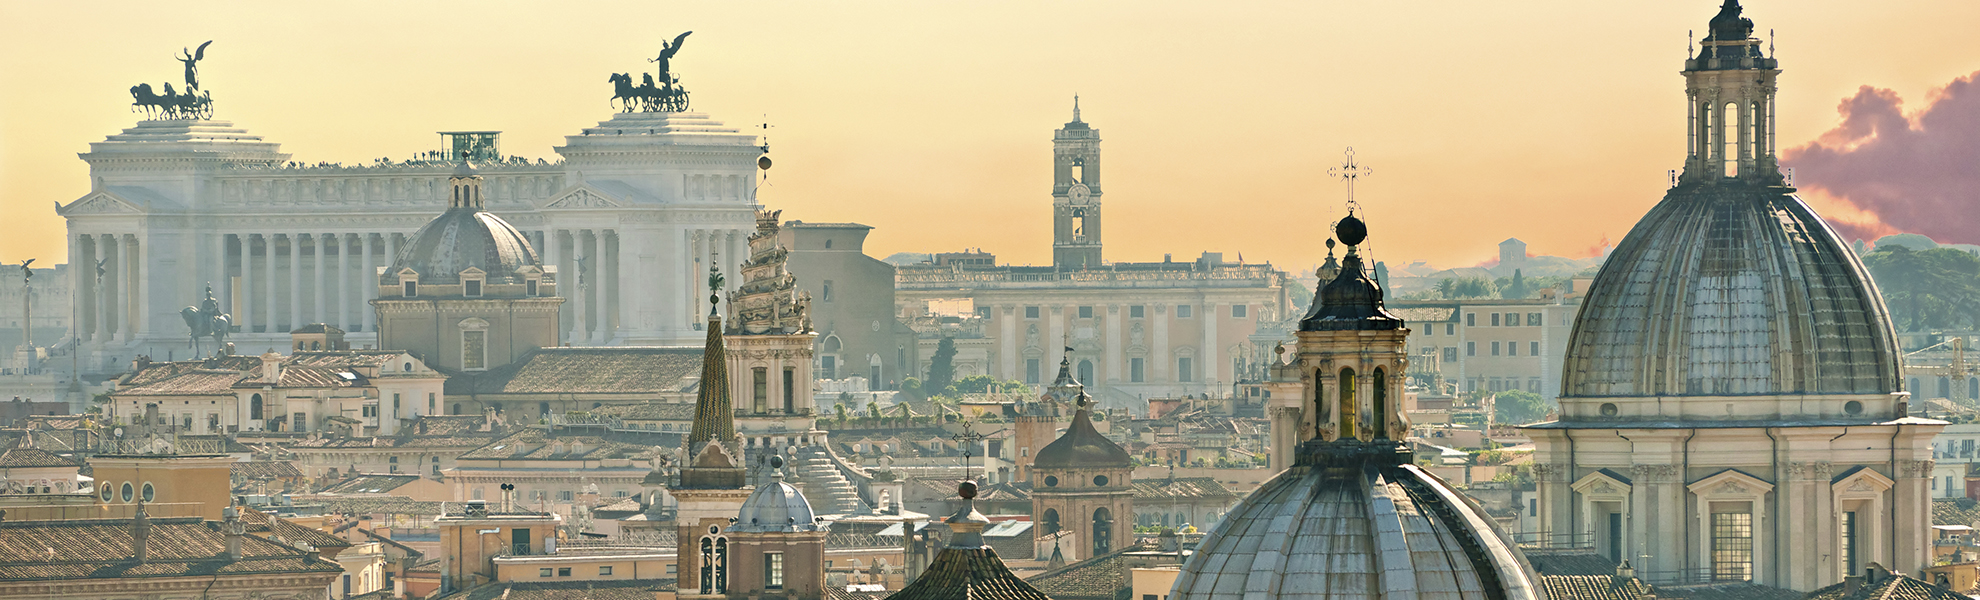 View of Rome from Castel Sant'Angelo, Italy.